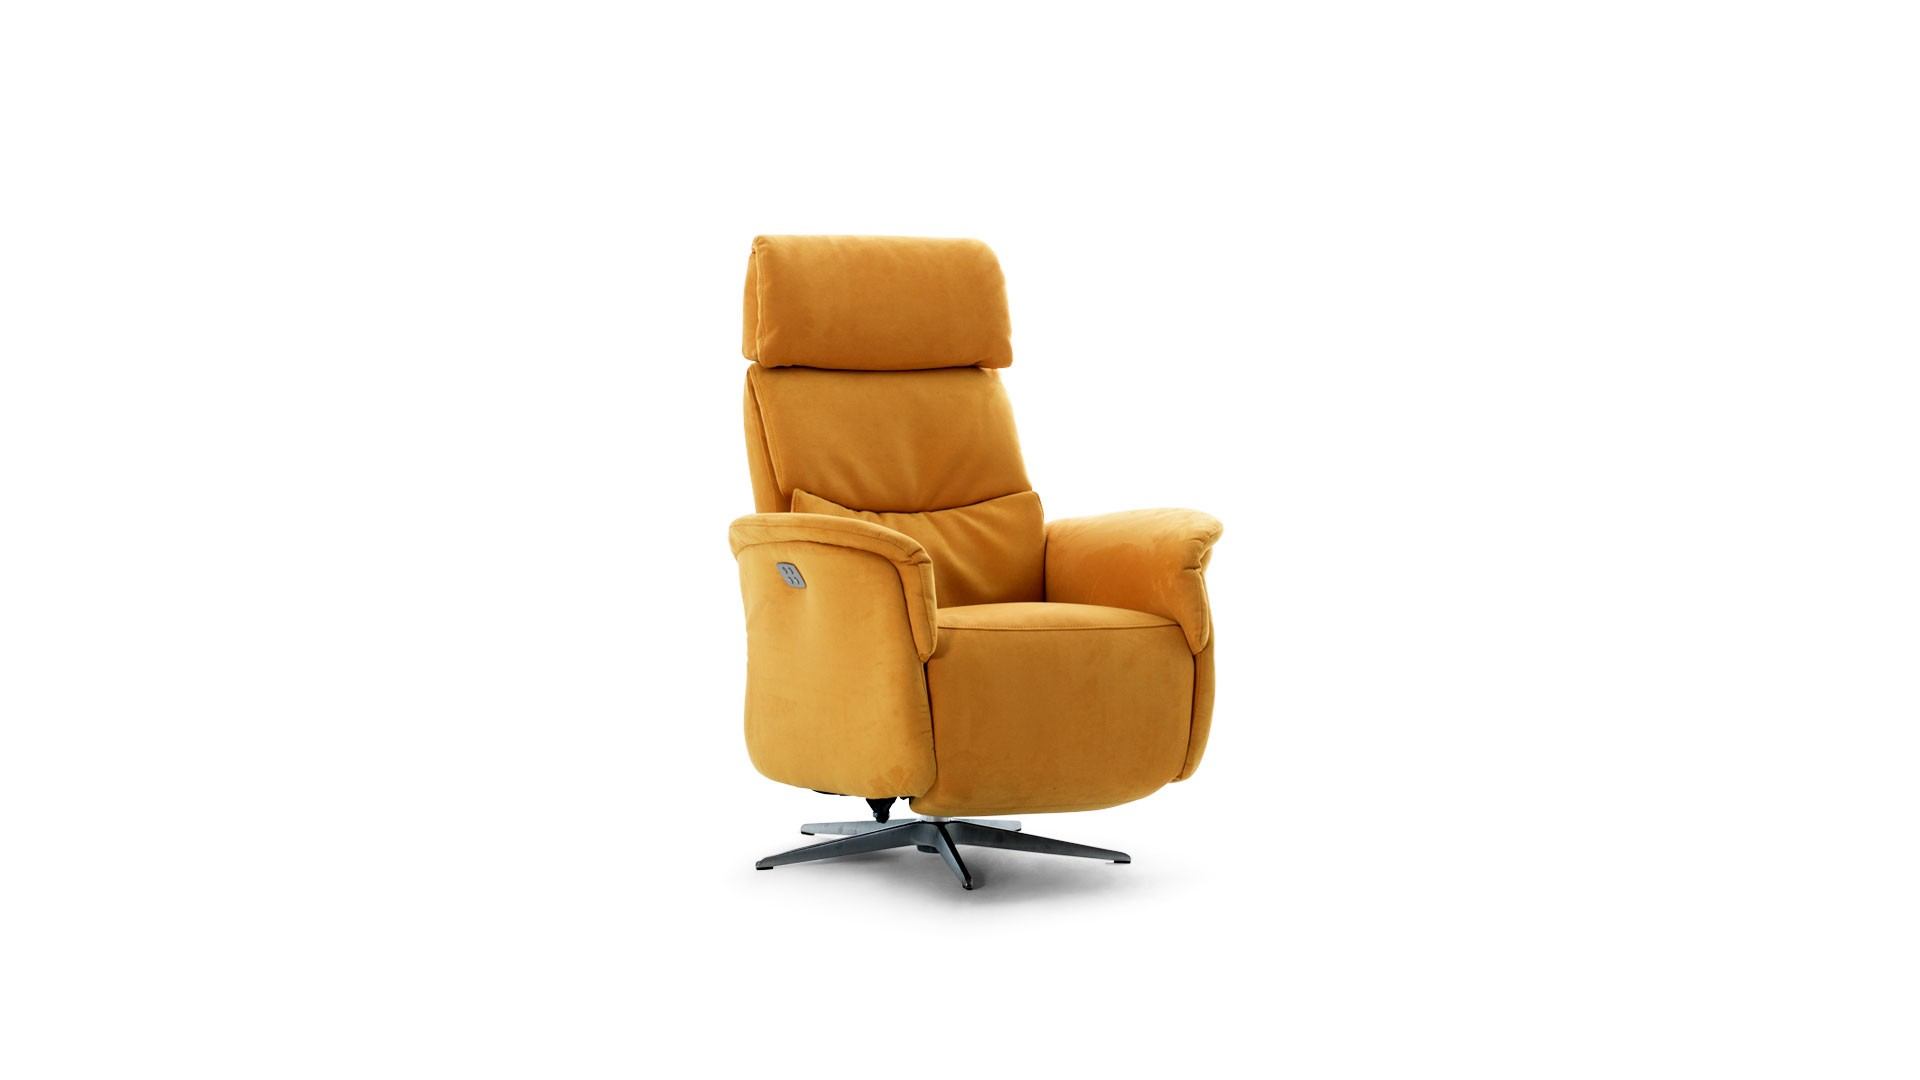 Fauteuil relaxation ELENA